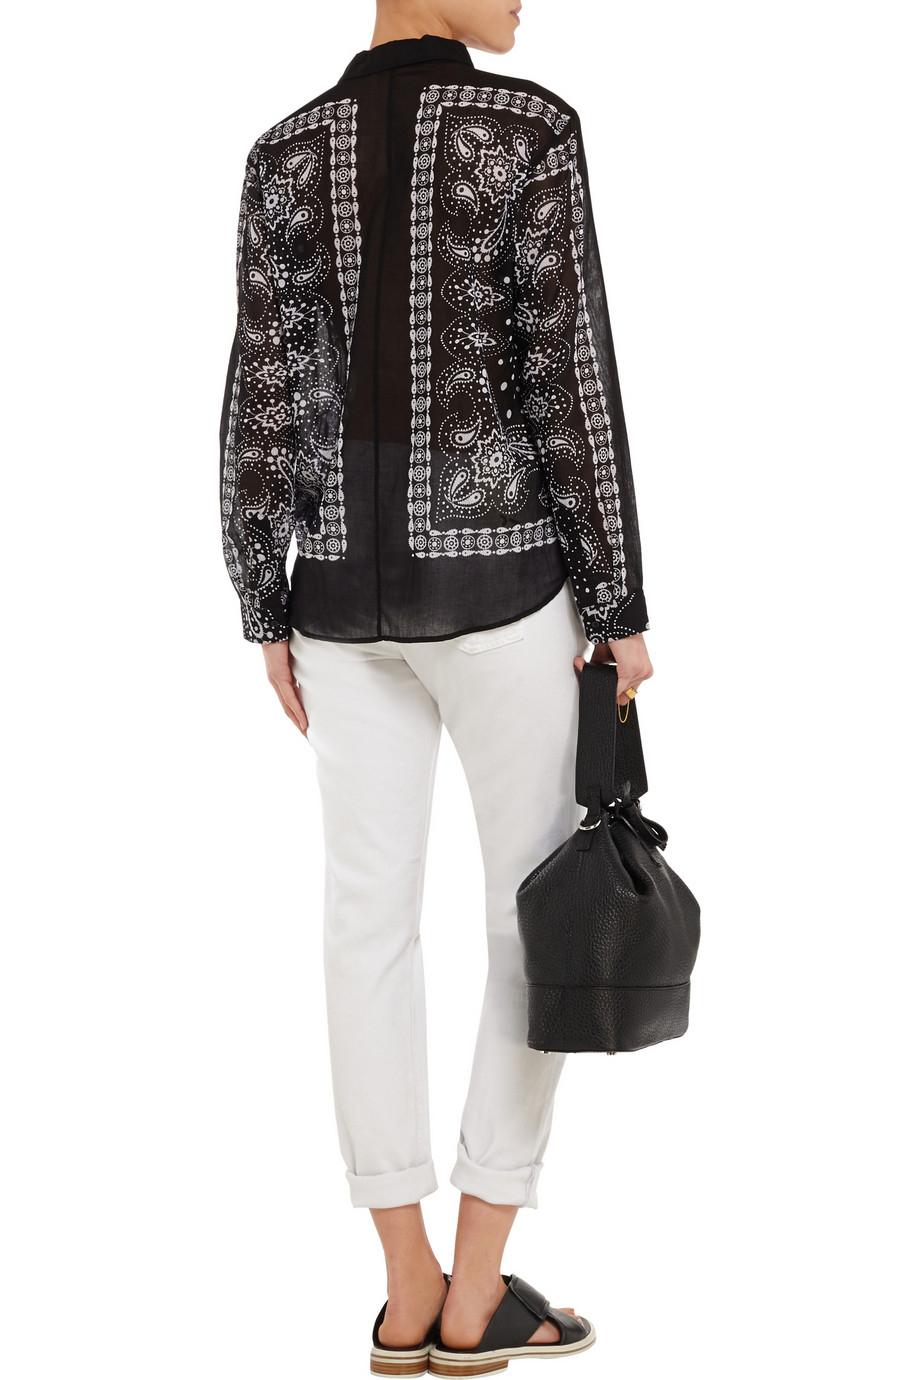 Sandro Colt Printed Cotton-voile Shirt in Black